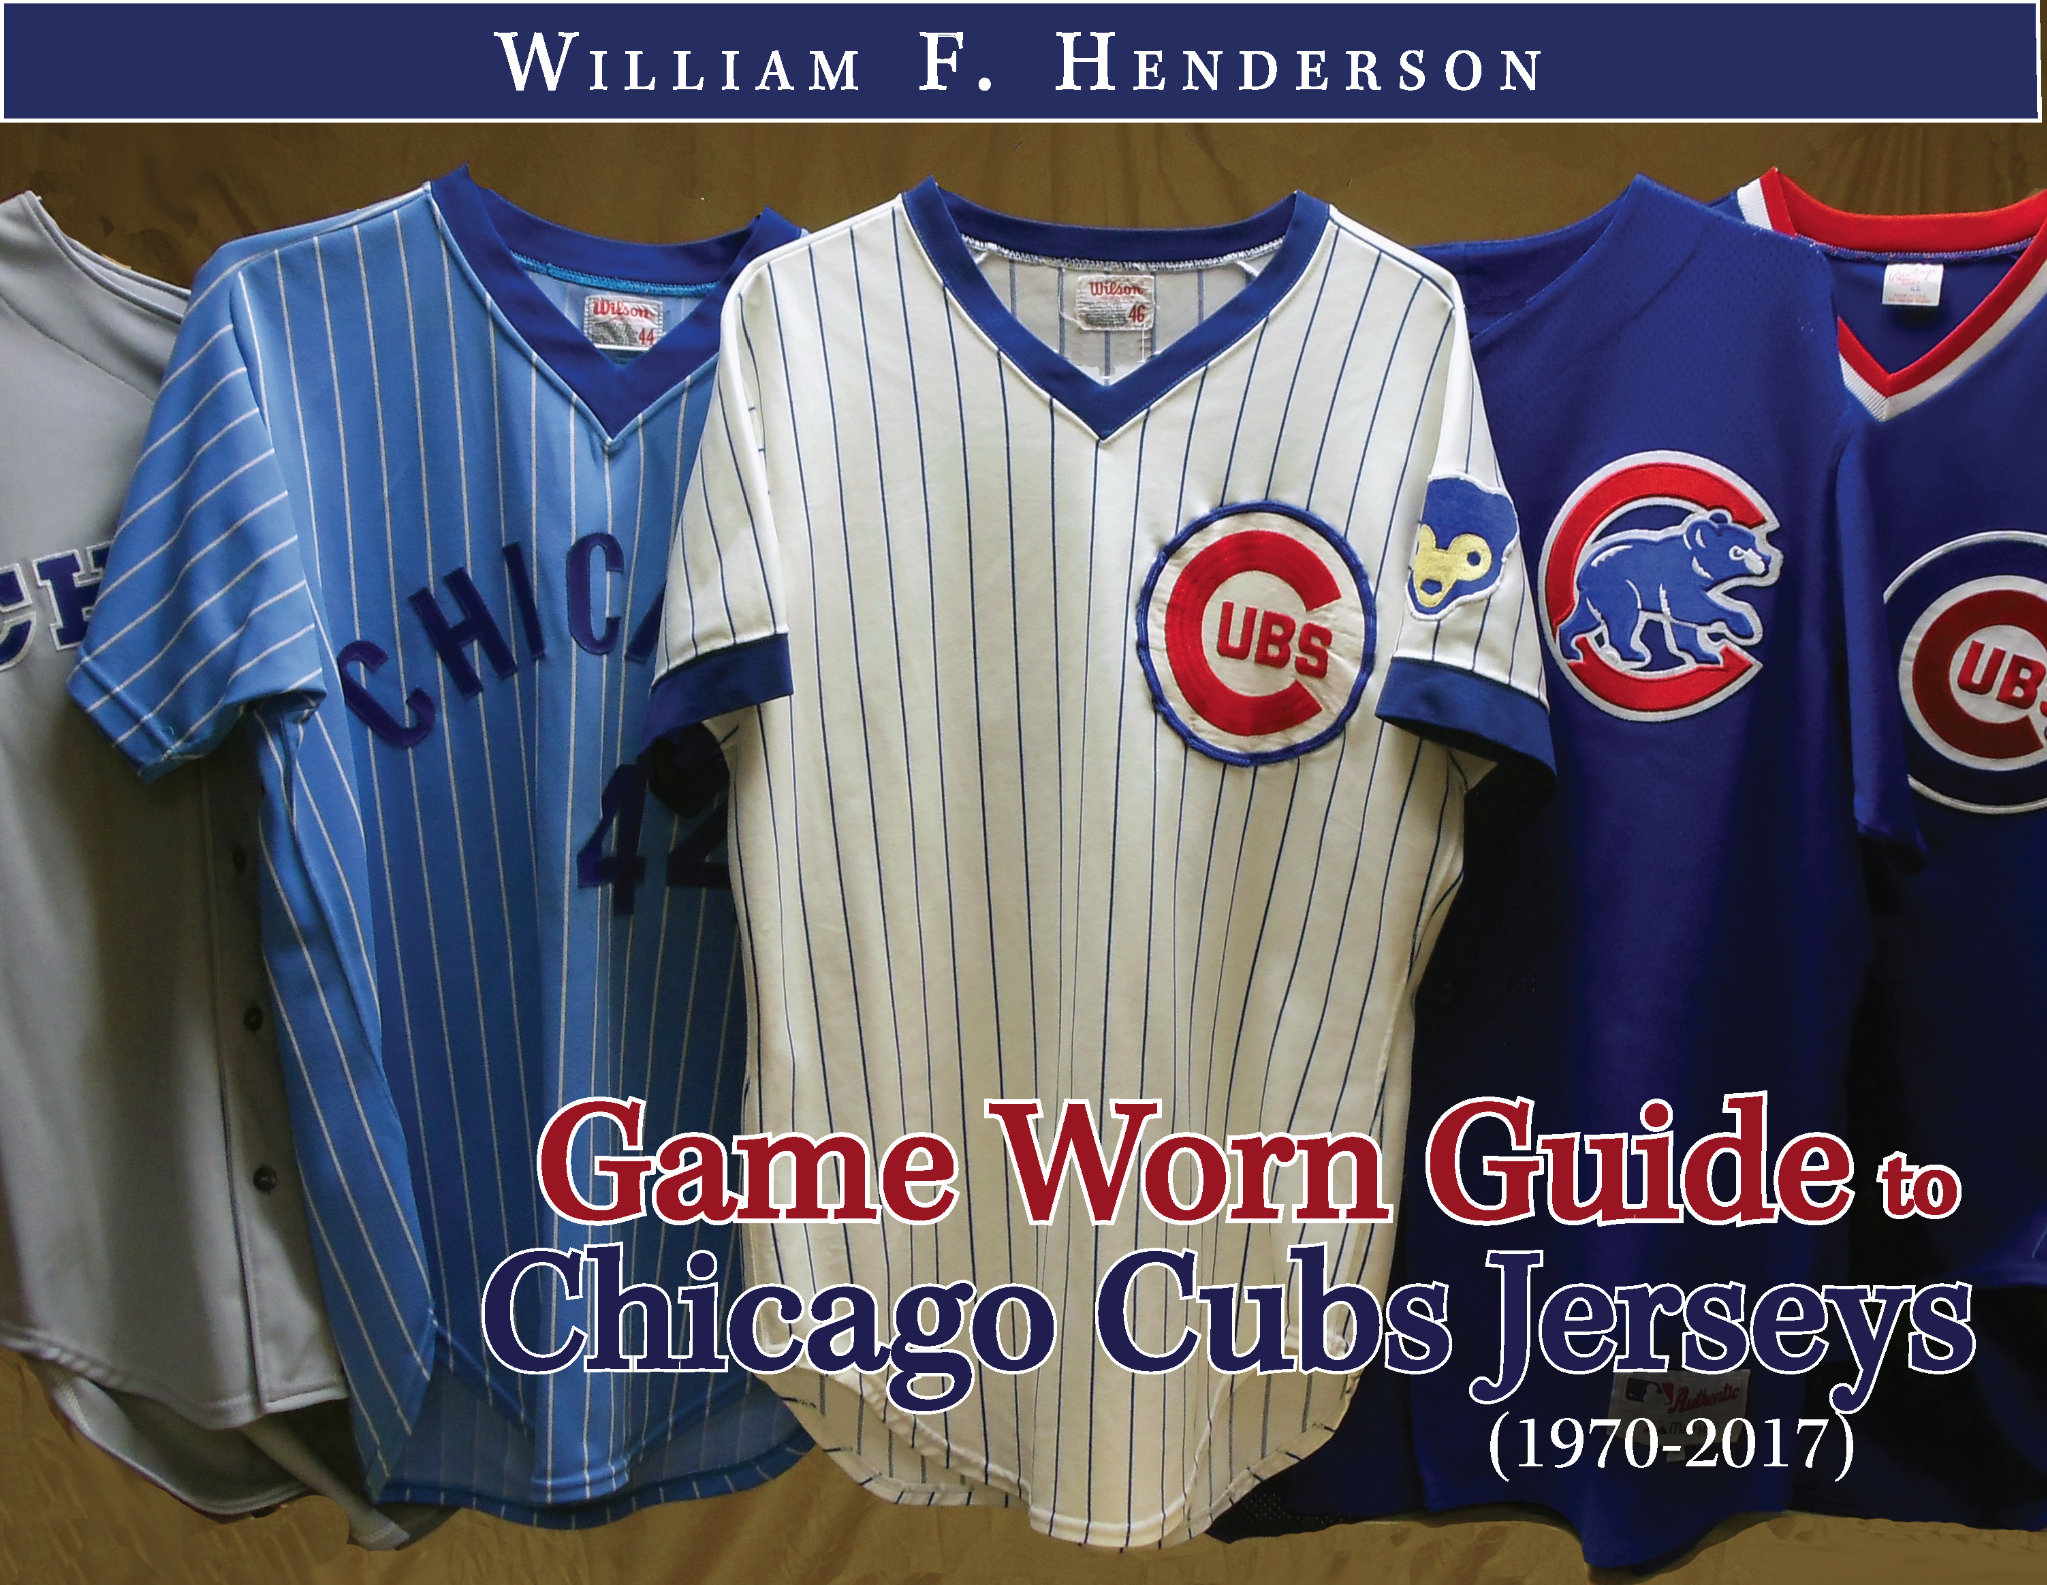 Game Worn Guide to Chicago Cubs jerseys (1970-2017)